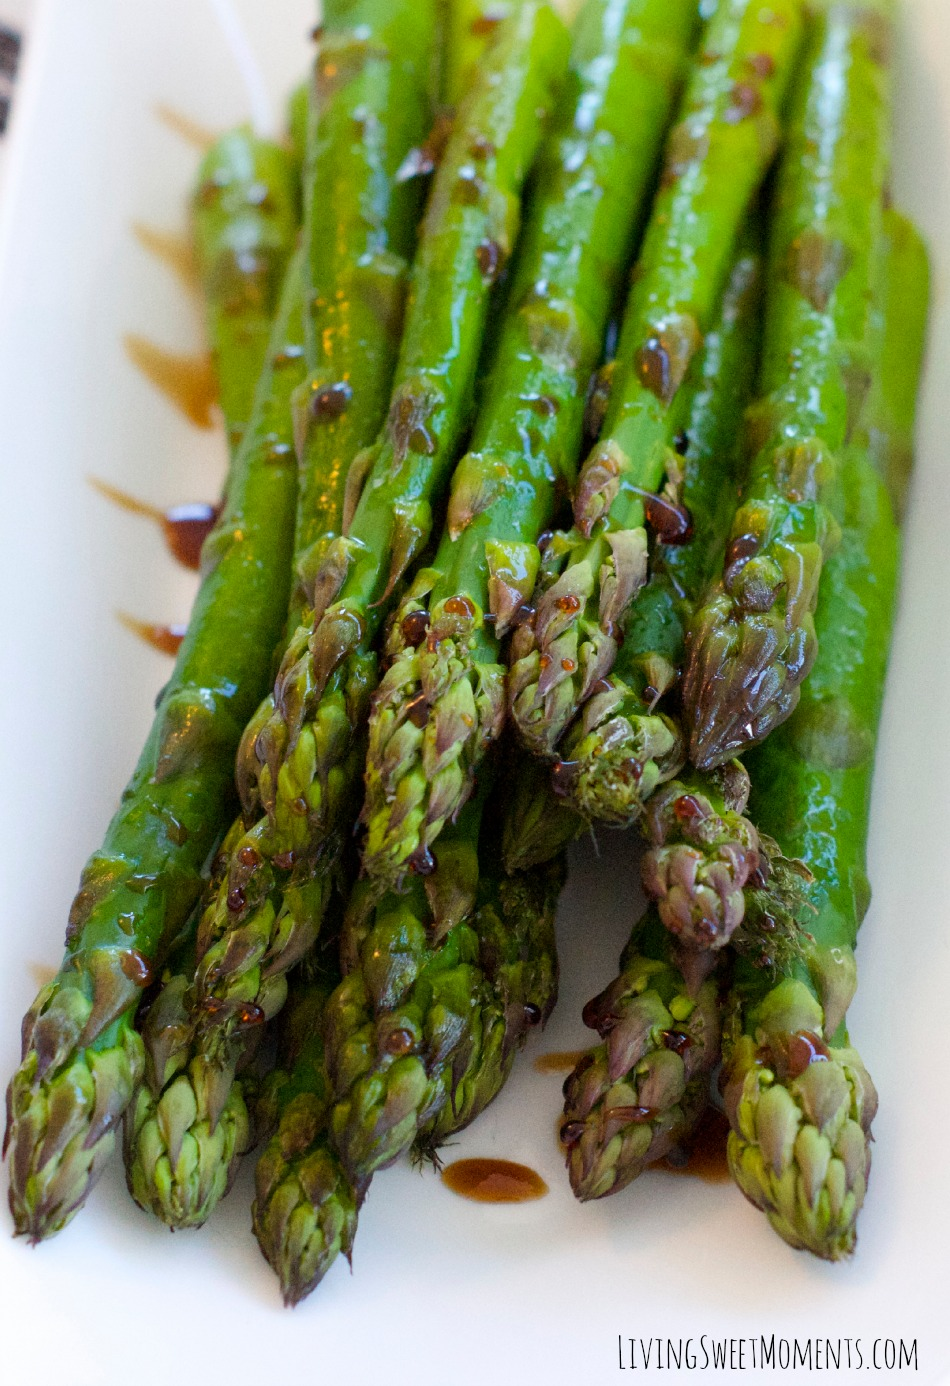 This delicious Lemon Balsamic Asparagus Recipe is perfect for a quick and healthy side dish weeknight meal. It's tangy, sweet and very flavorful.